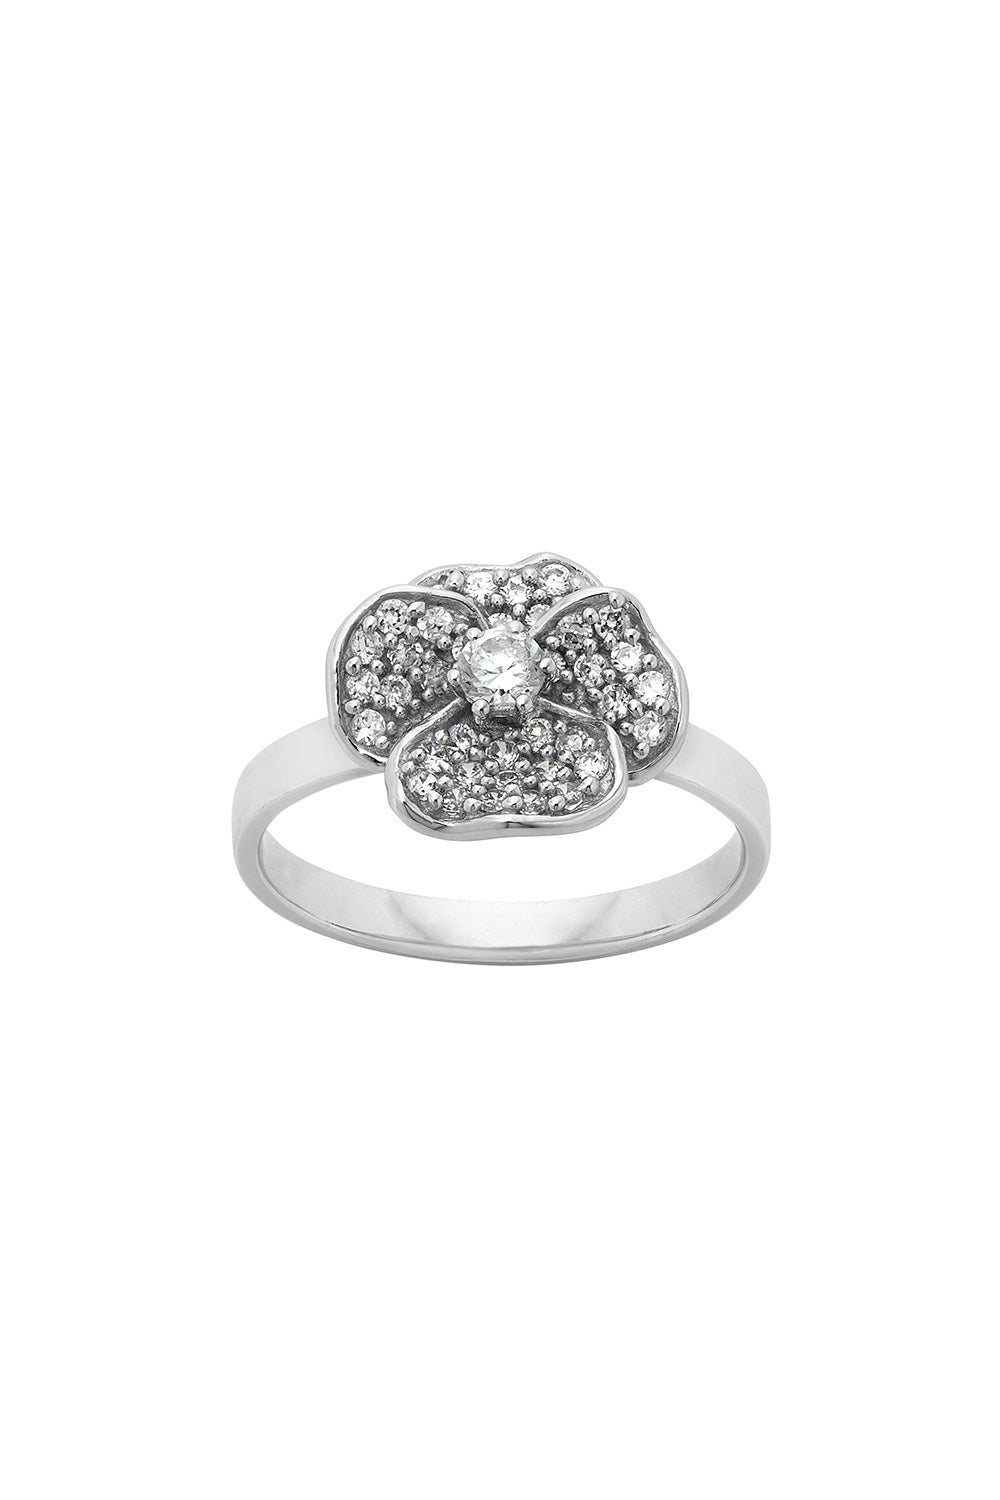 Single Pansy Diamond Ring, 9ct White Gold. .43ct Diamond